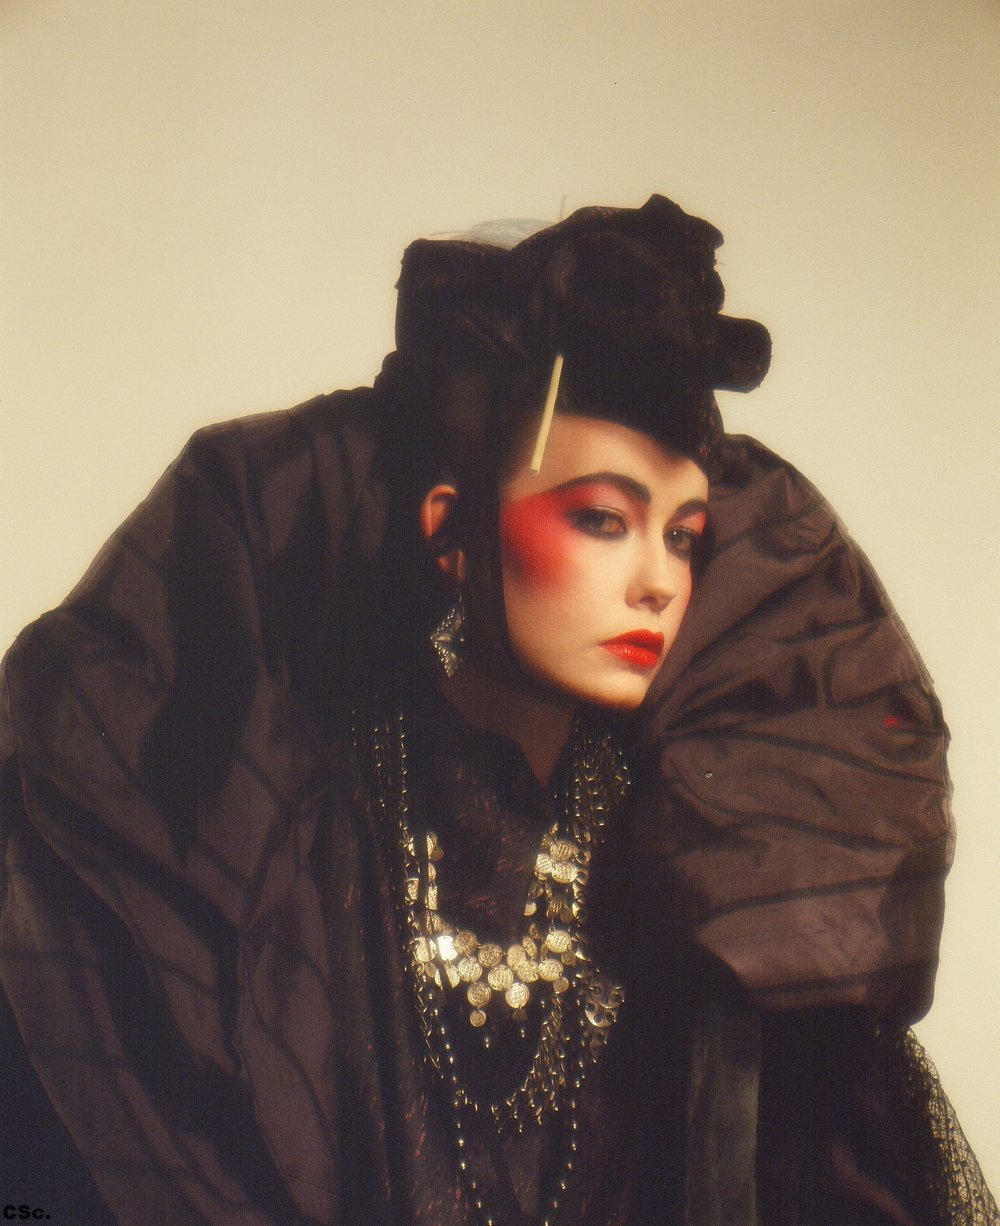 Raw Silk Jacket, Hat, Necklace, 1979, Photo by Anthony Dalton